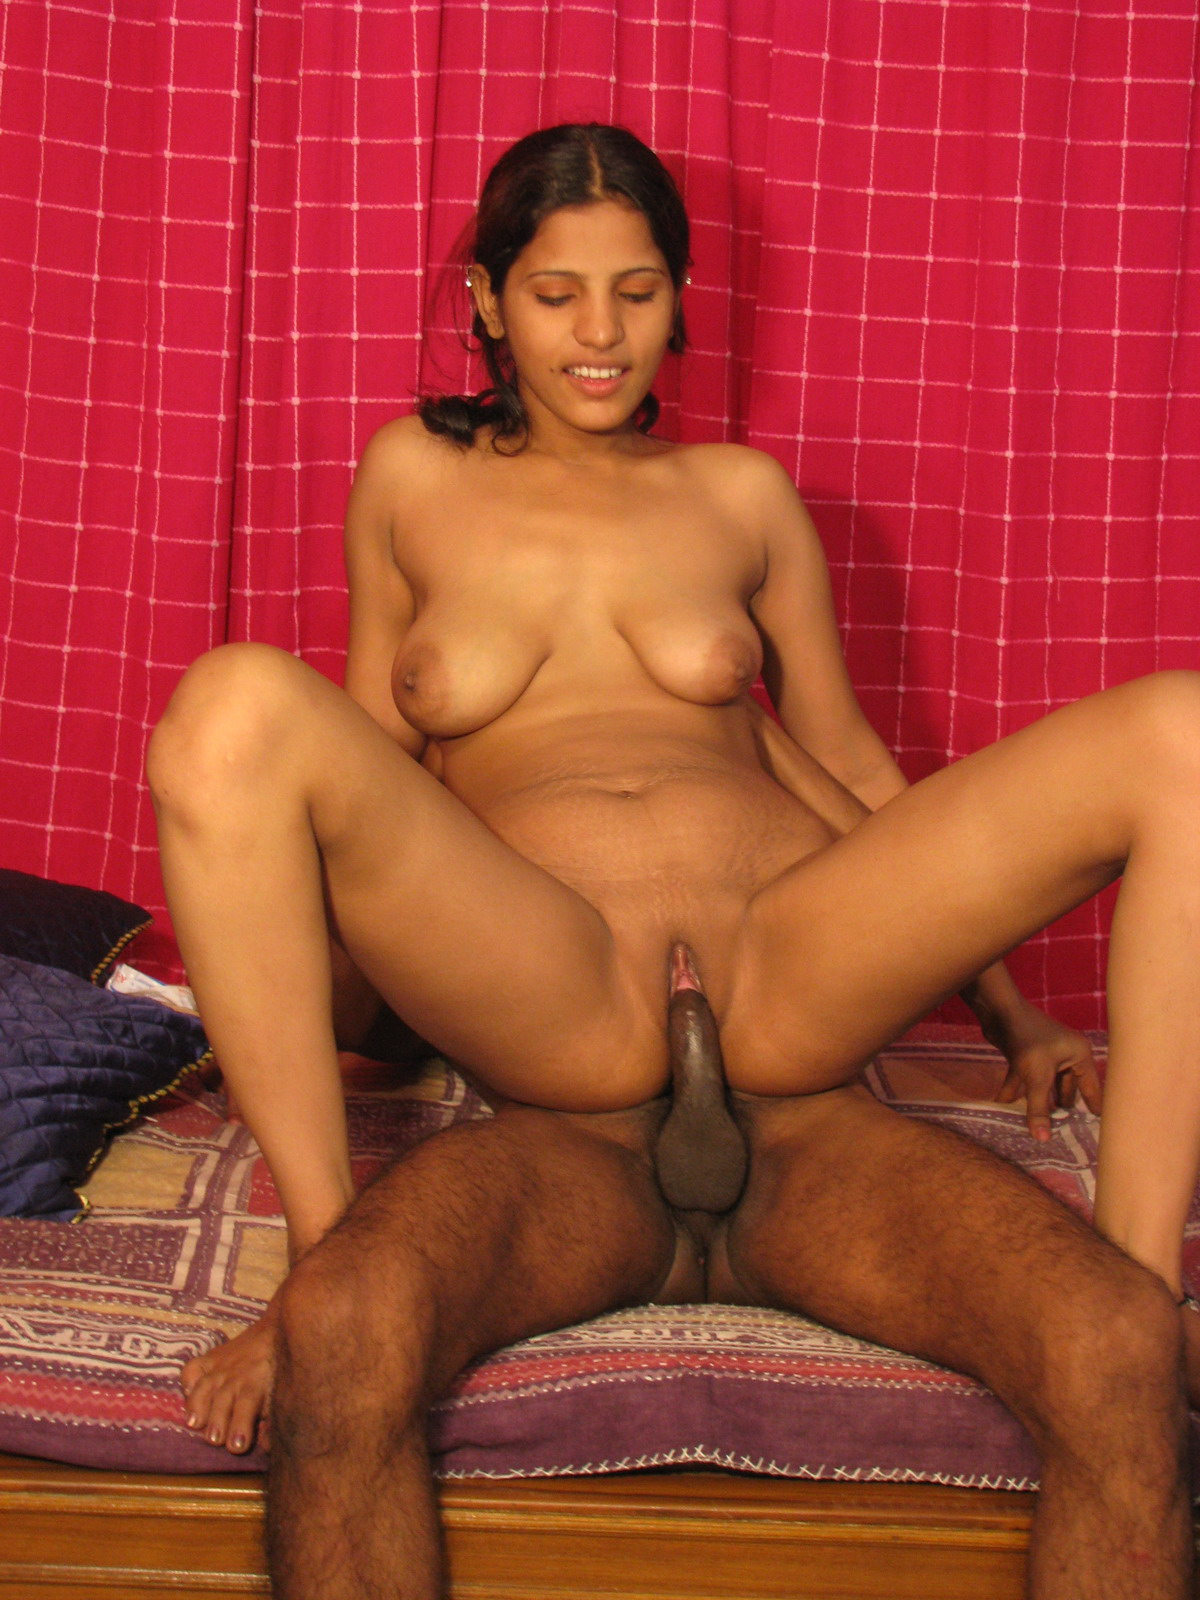 amateur-shemales-indian-babes-being-fucked-naked